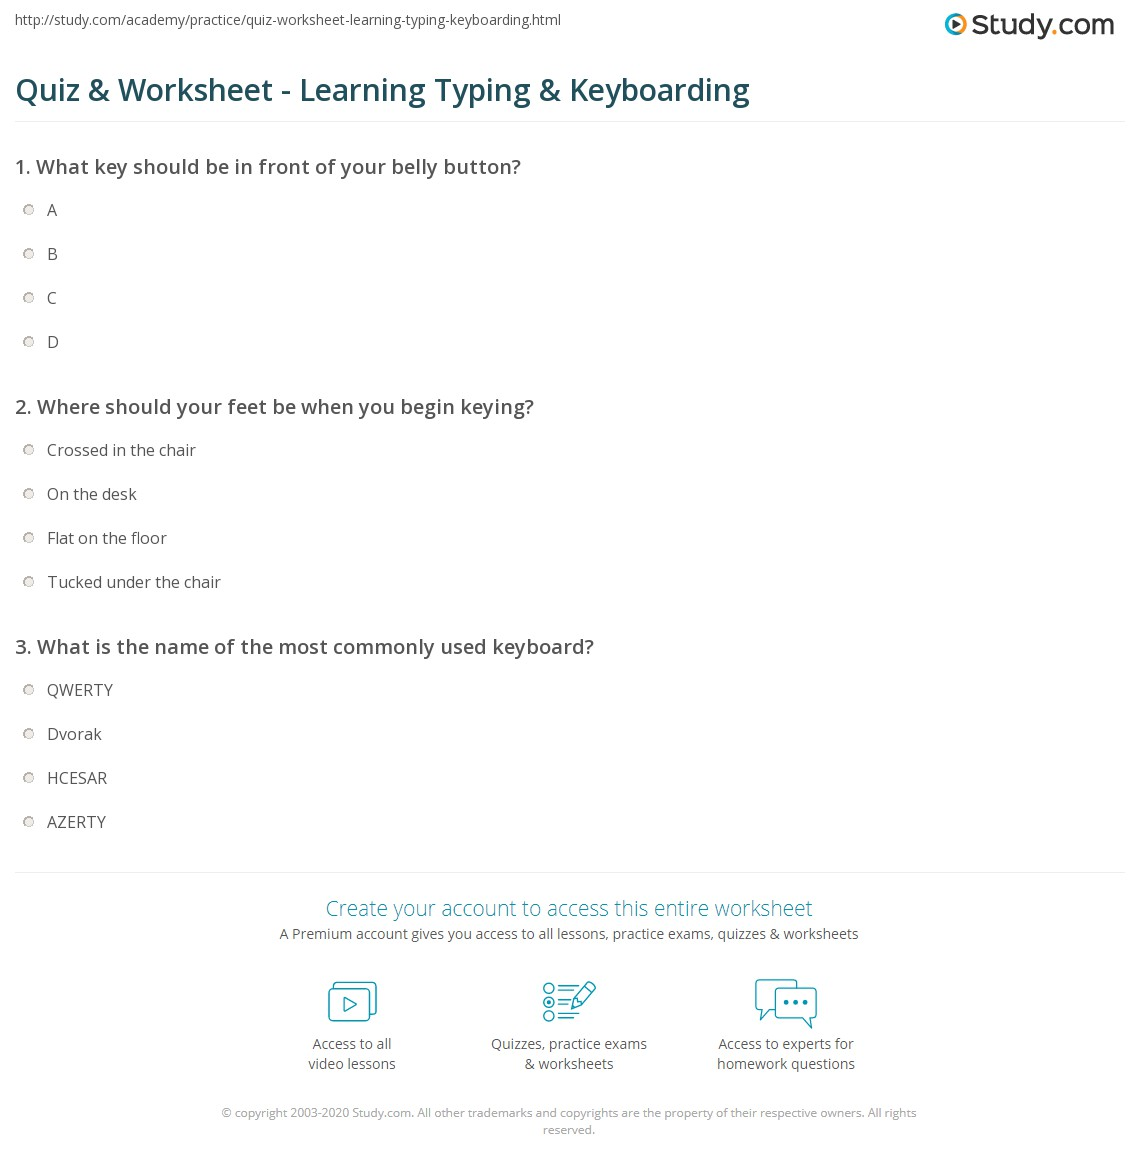 Printables Typing Practice Worksheets quiz worksheet learning typing keyboarding study com print how to learn type worksheet